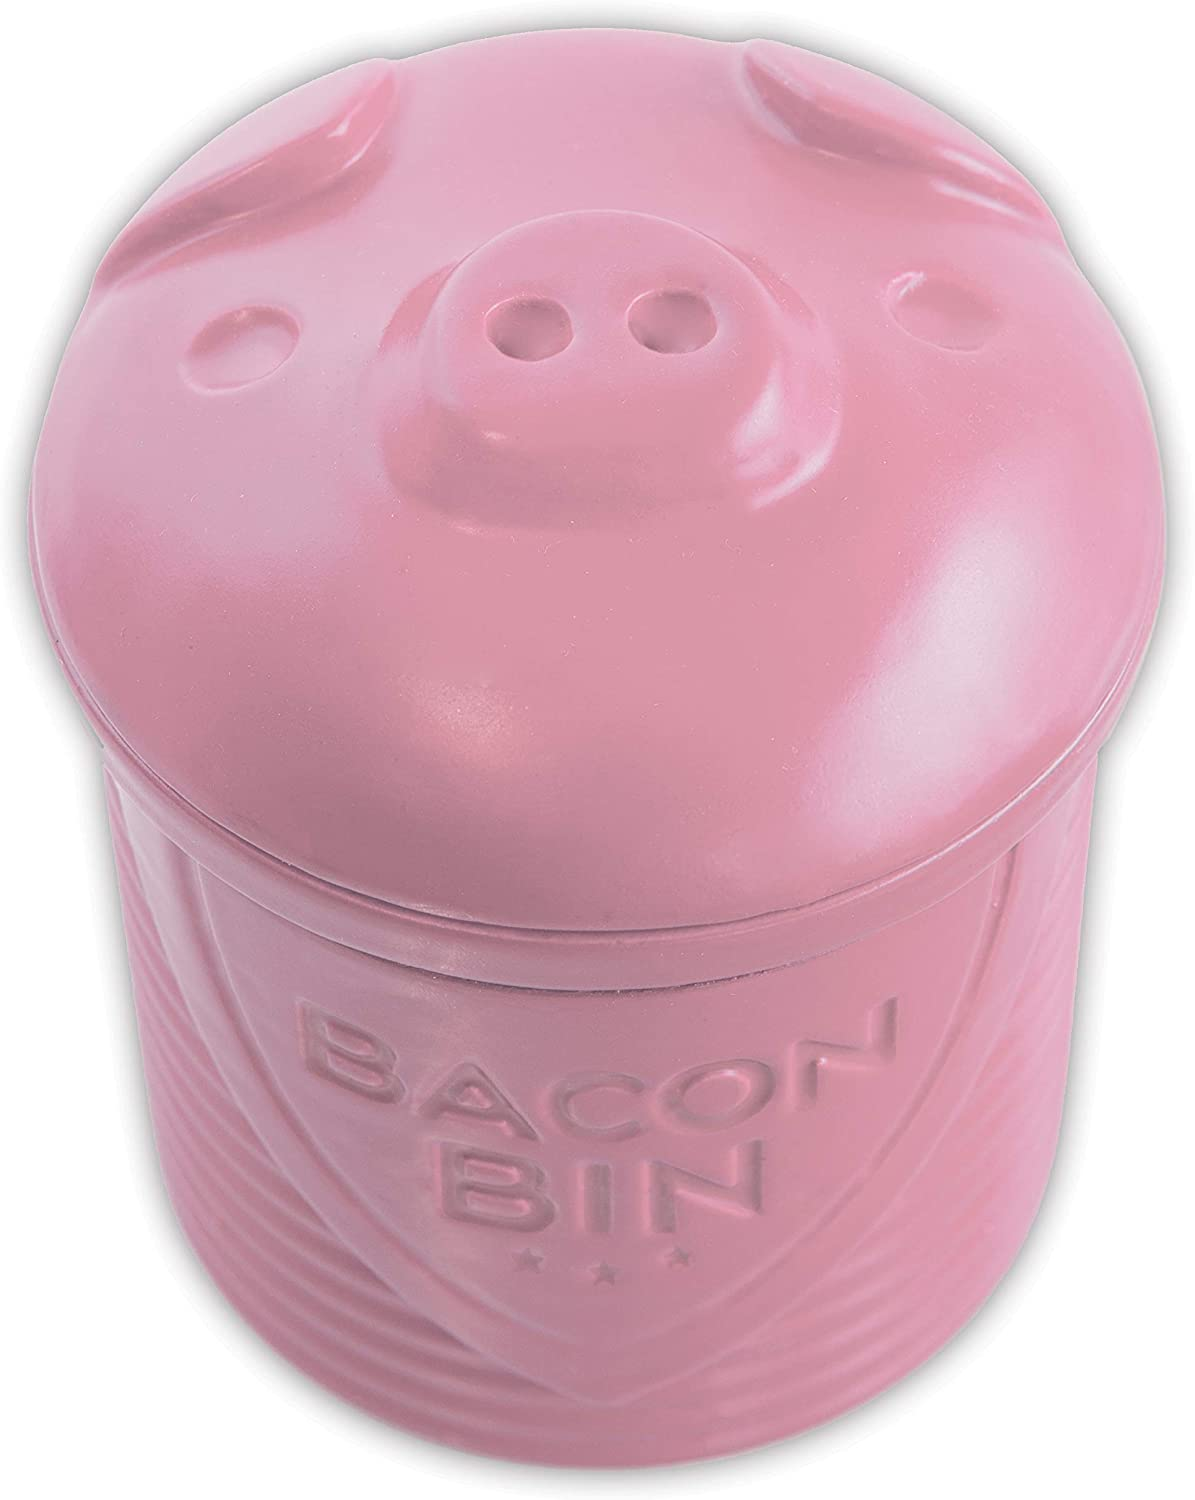 Talisman Designs 00544 Bacon Bin Grease Holder, Silicone, FDA Approved and BPA Free